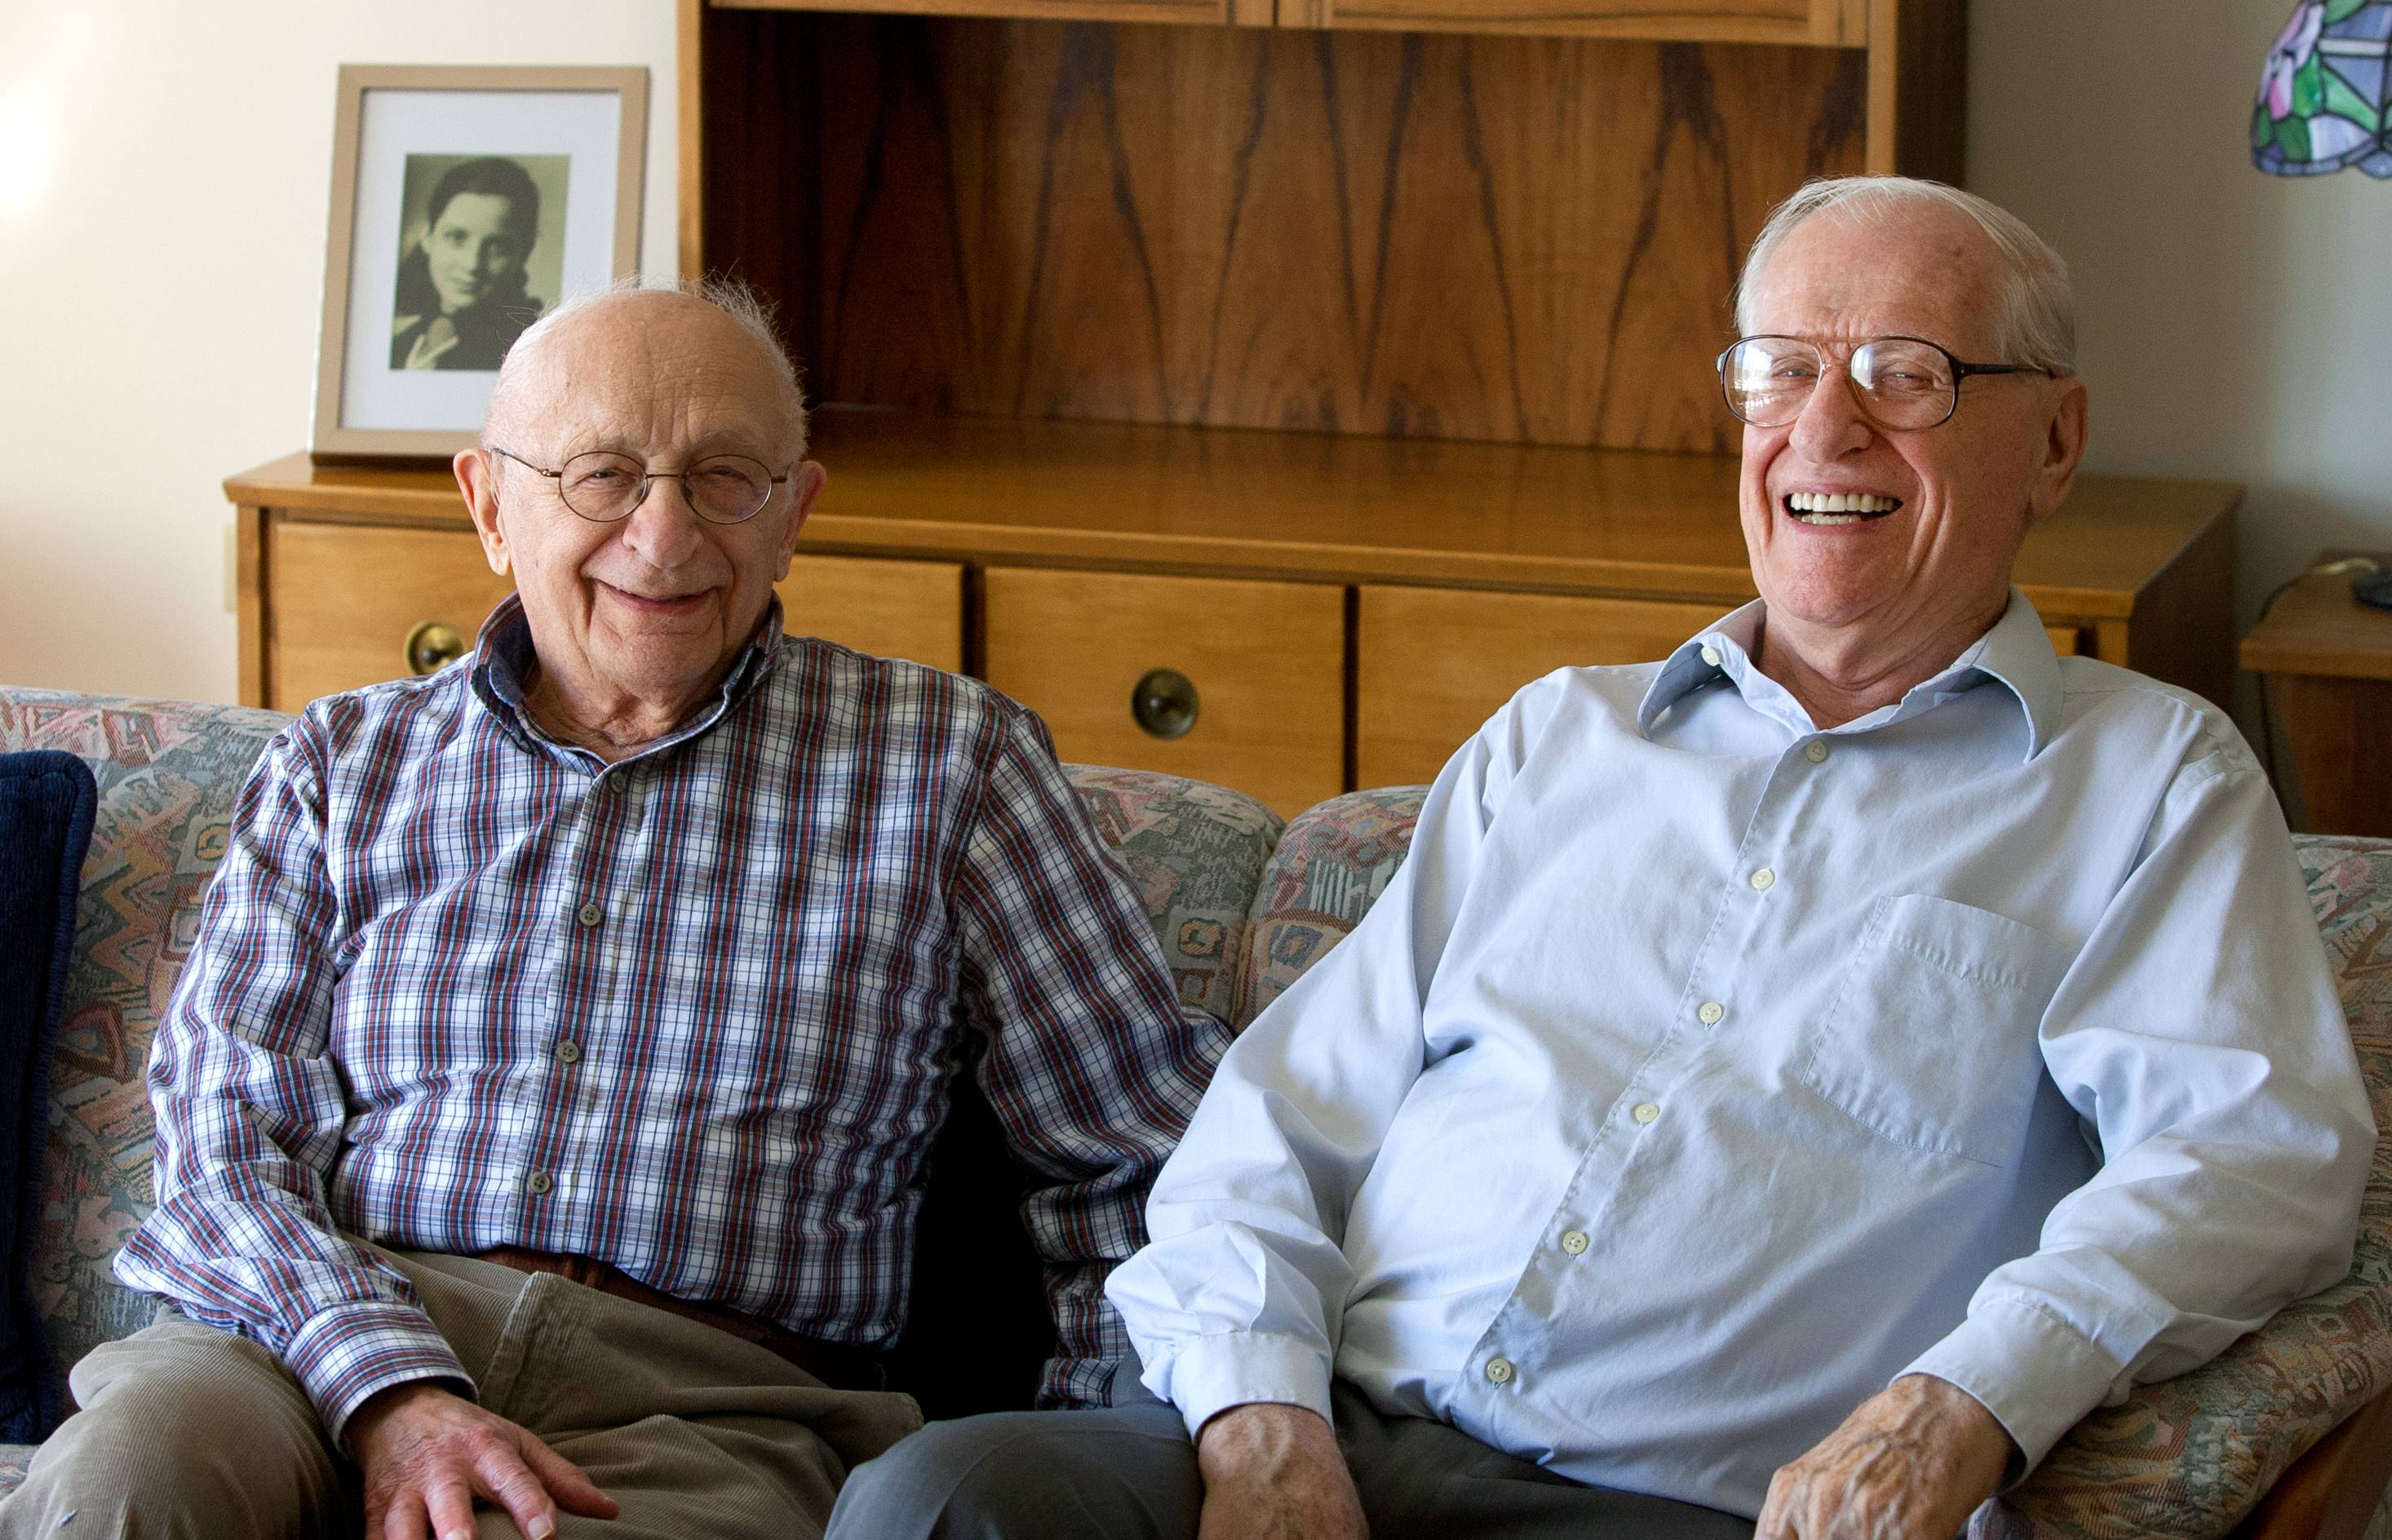 How Holocaust shaped lives, friendship of two Lombard men